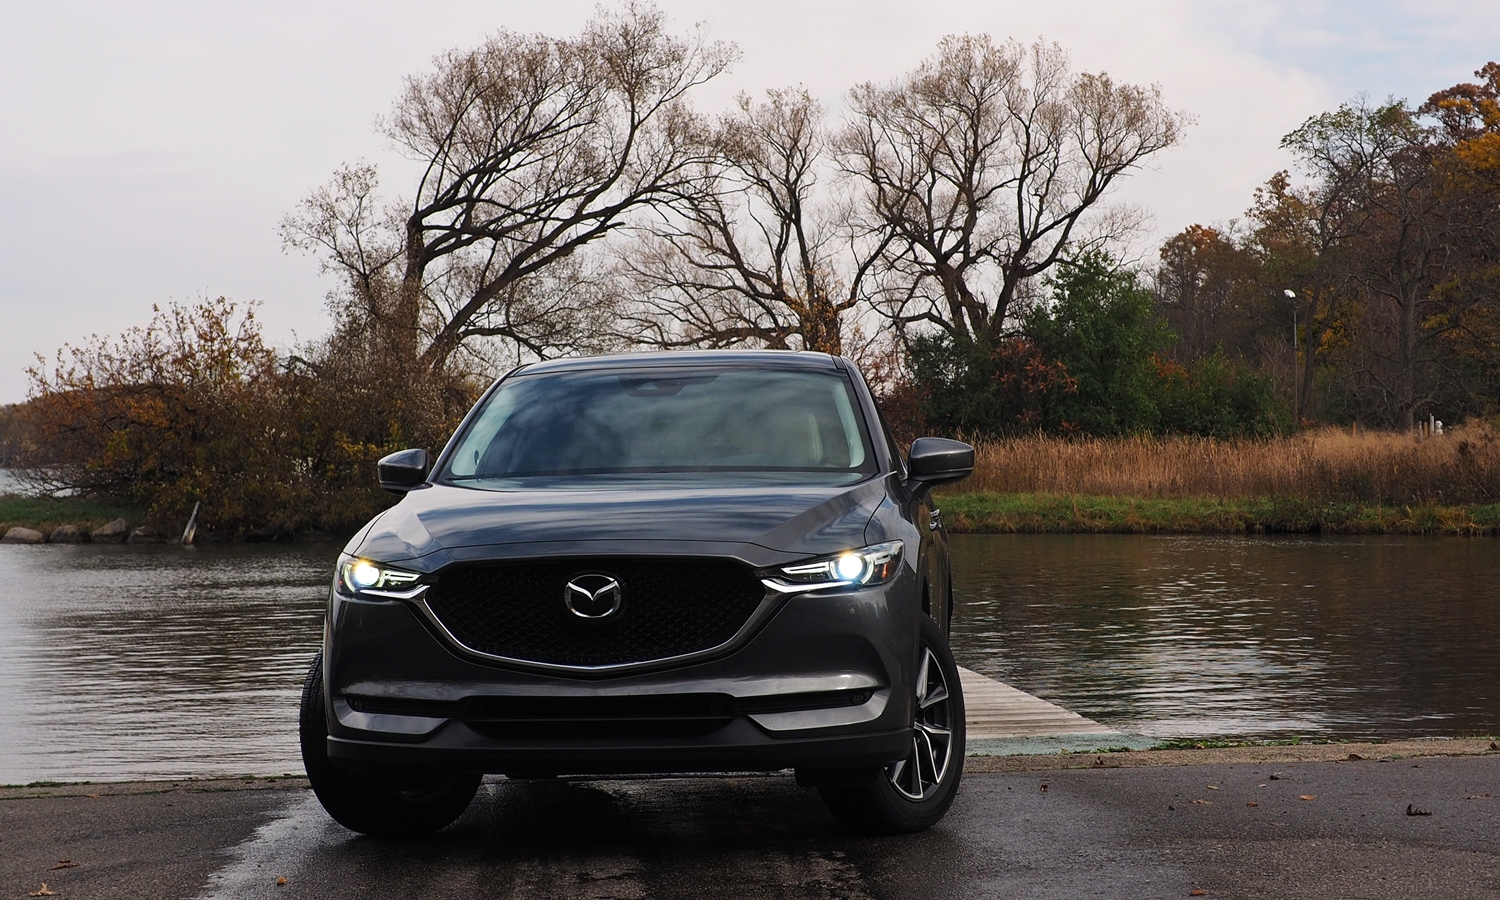 Mazda CX-5 Photos: 2017 Mazda CX-5 front view